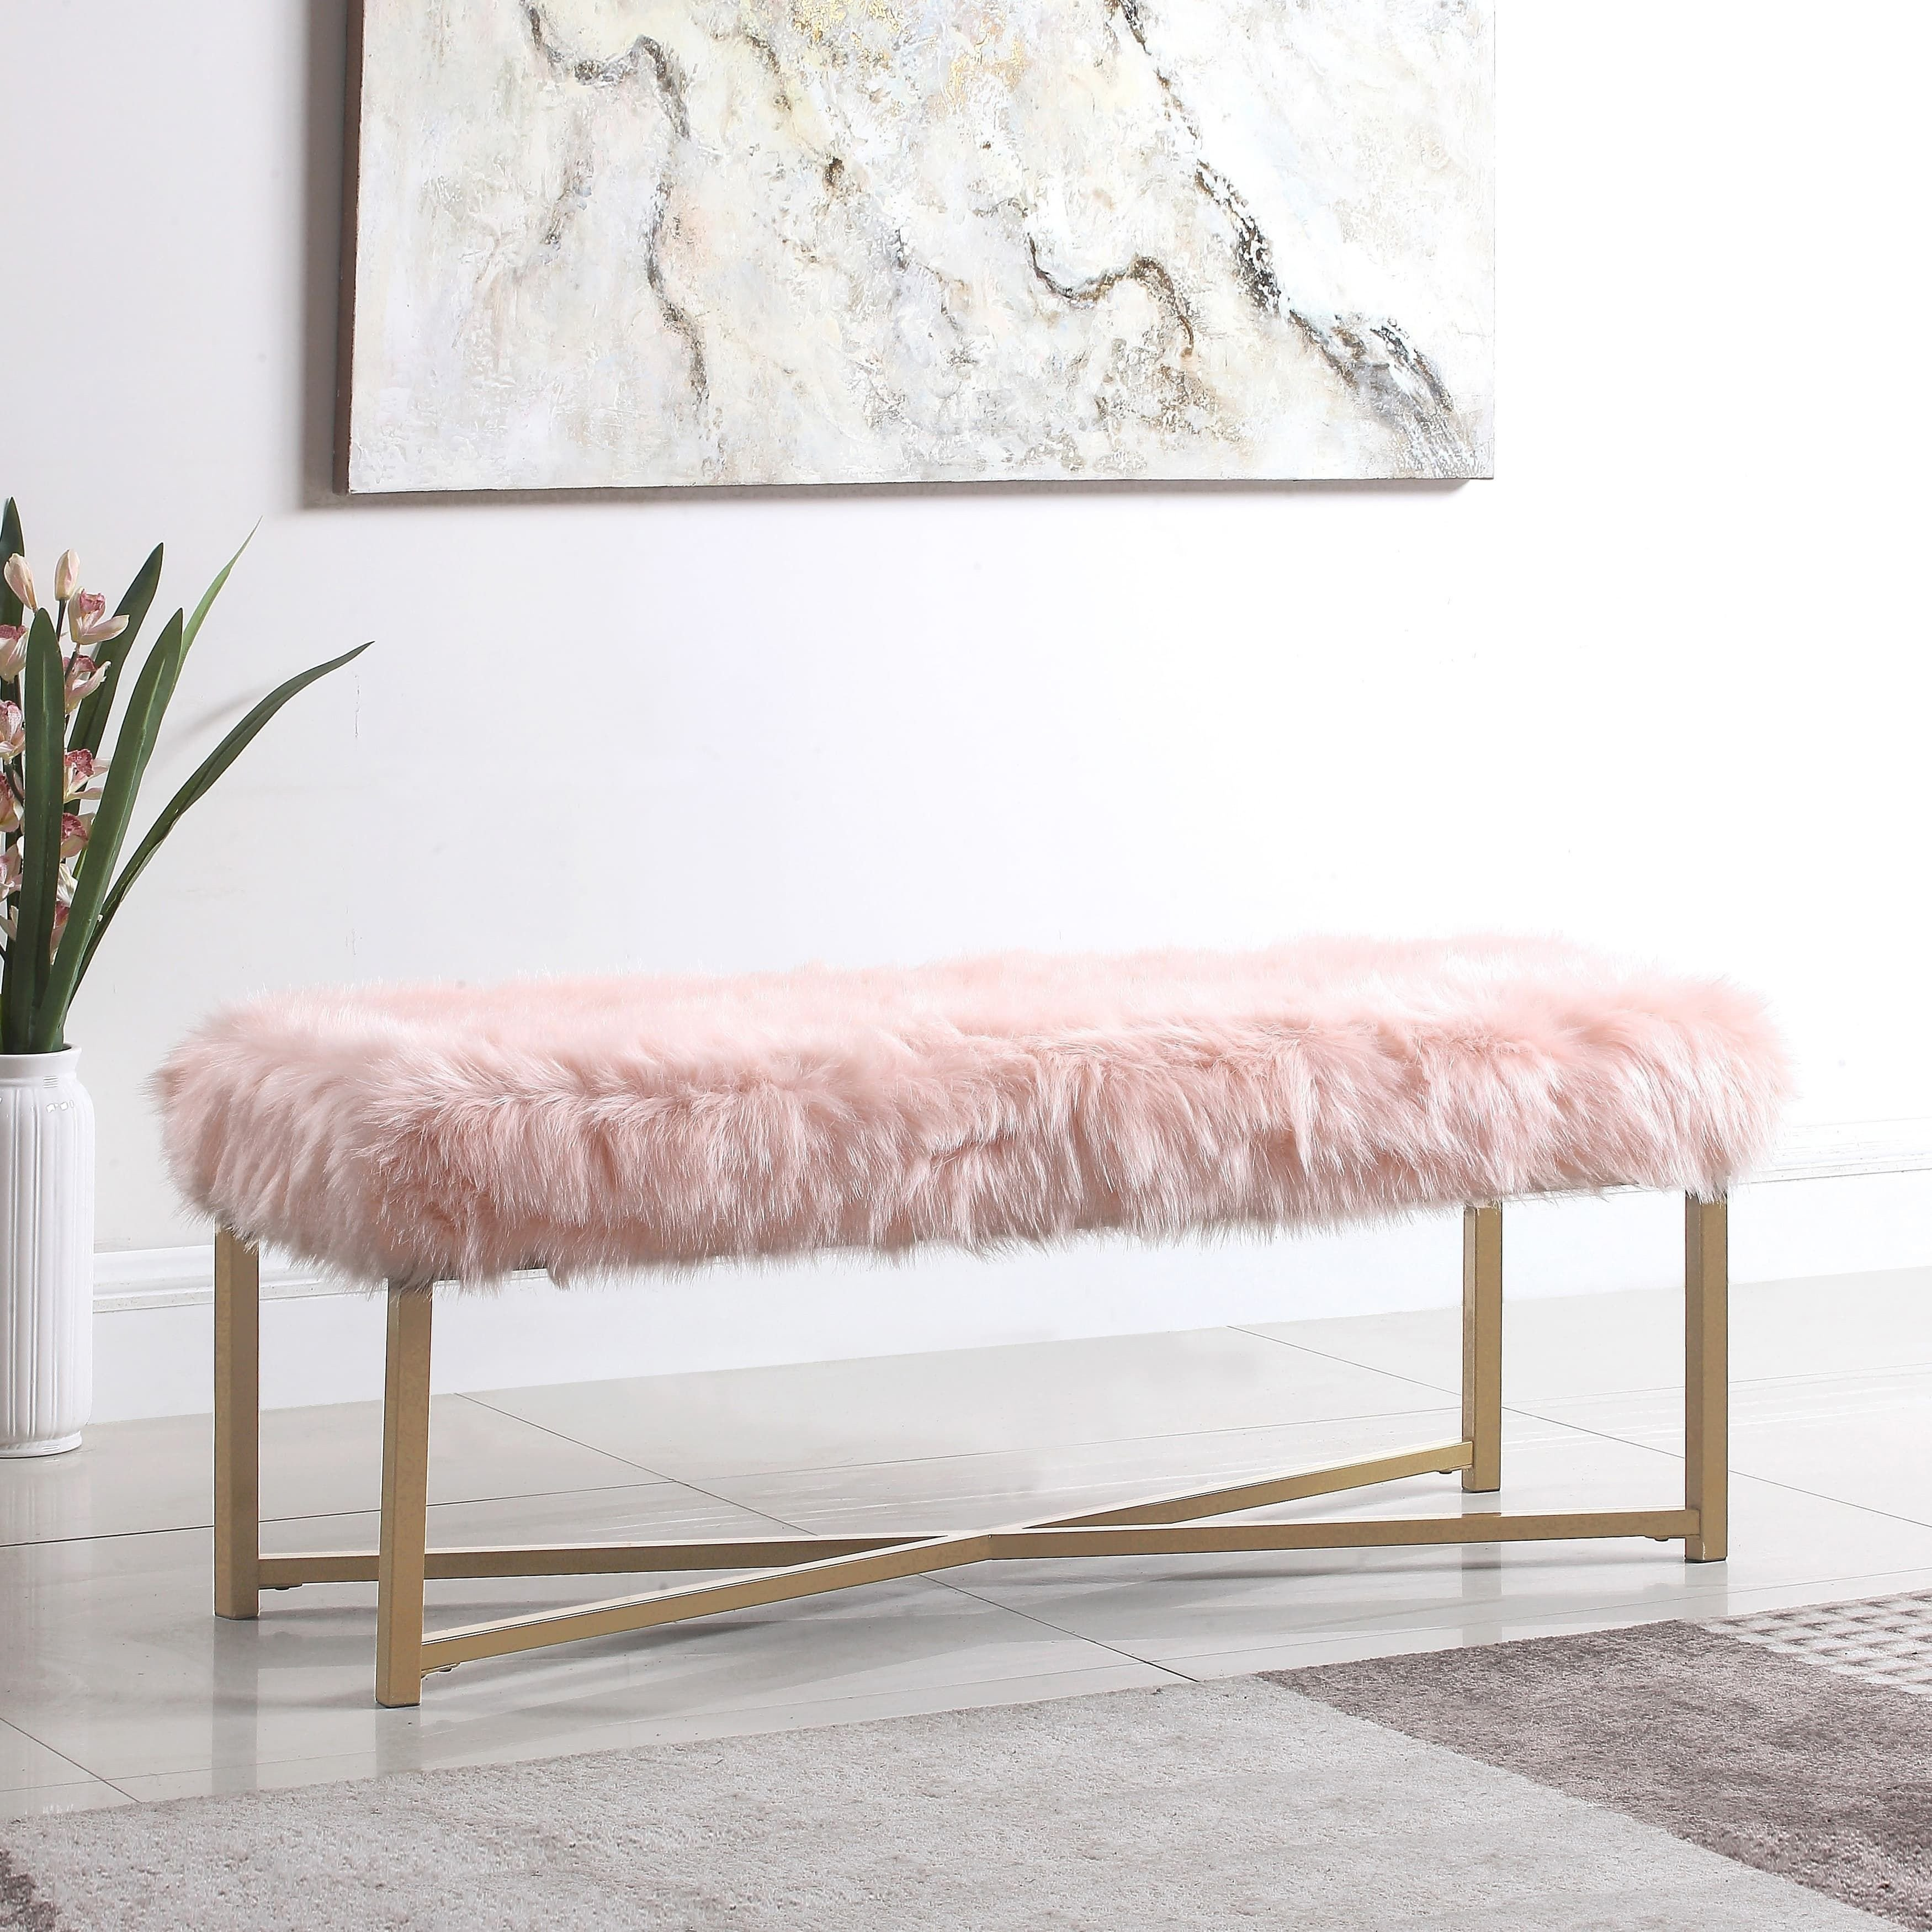 Pink Chair for Bedroom Inspirational Homepop Faux Fur Rectangle Bench Pink